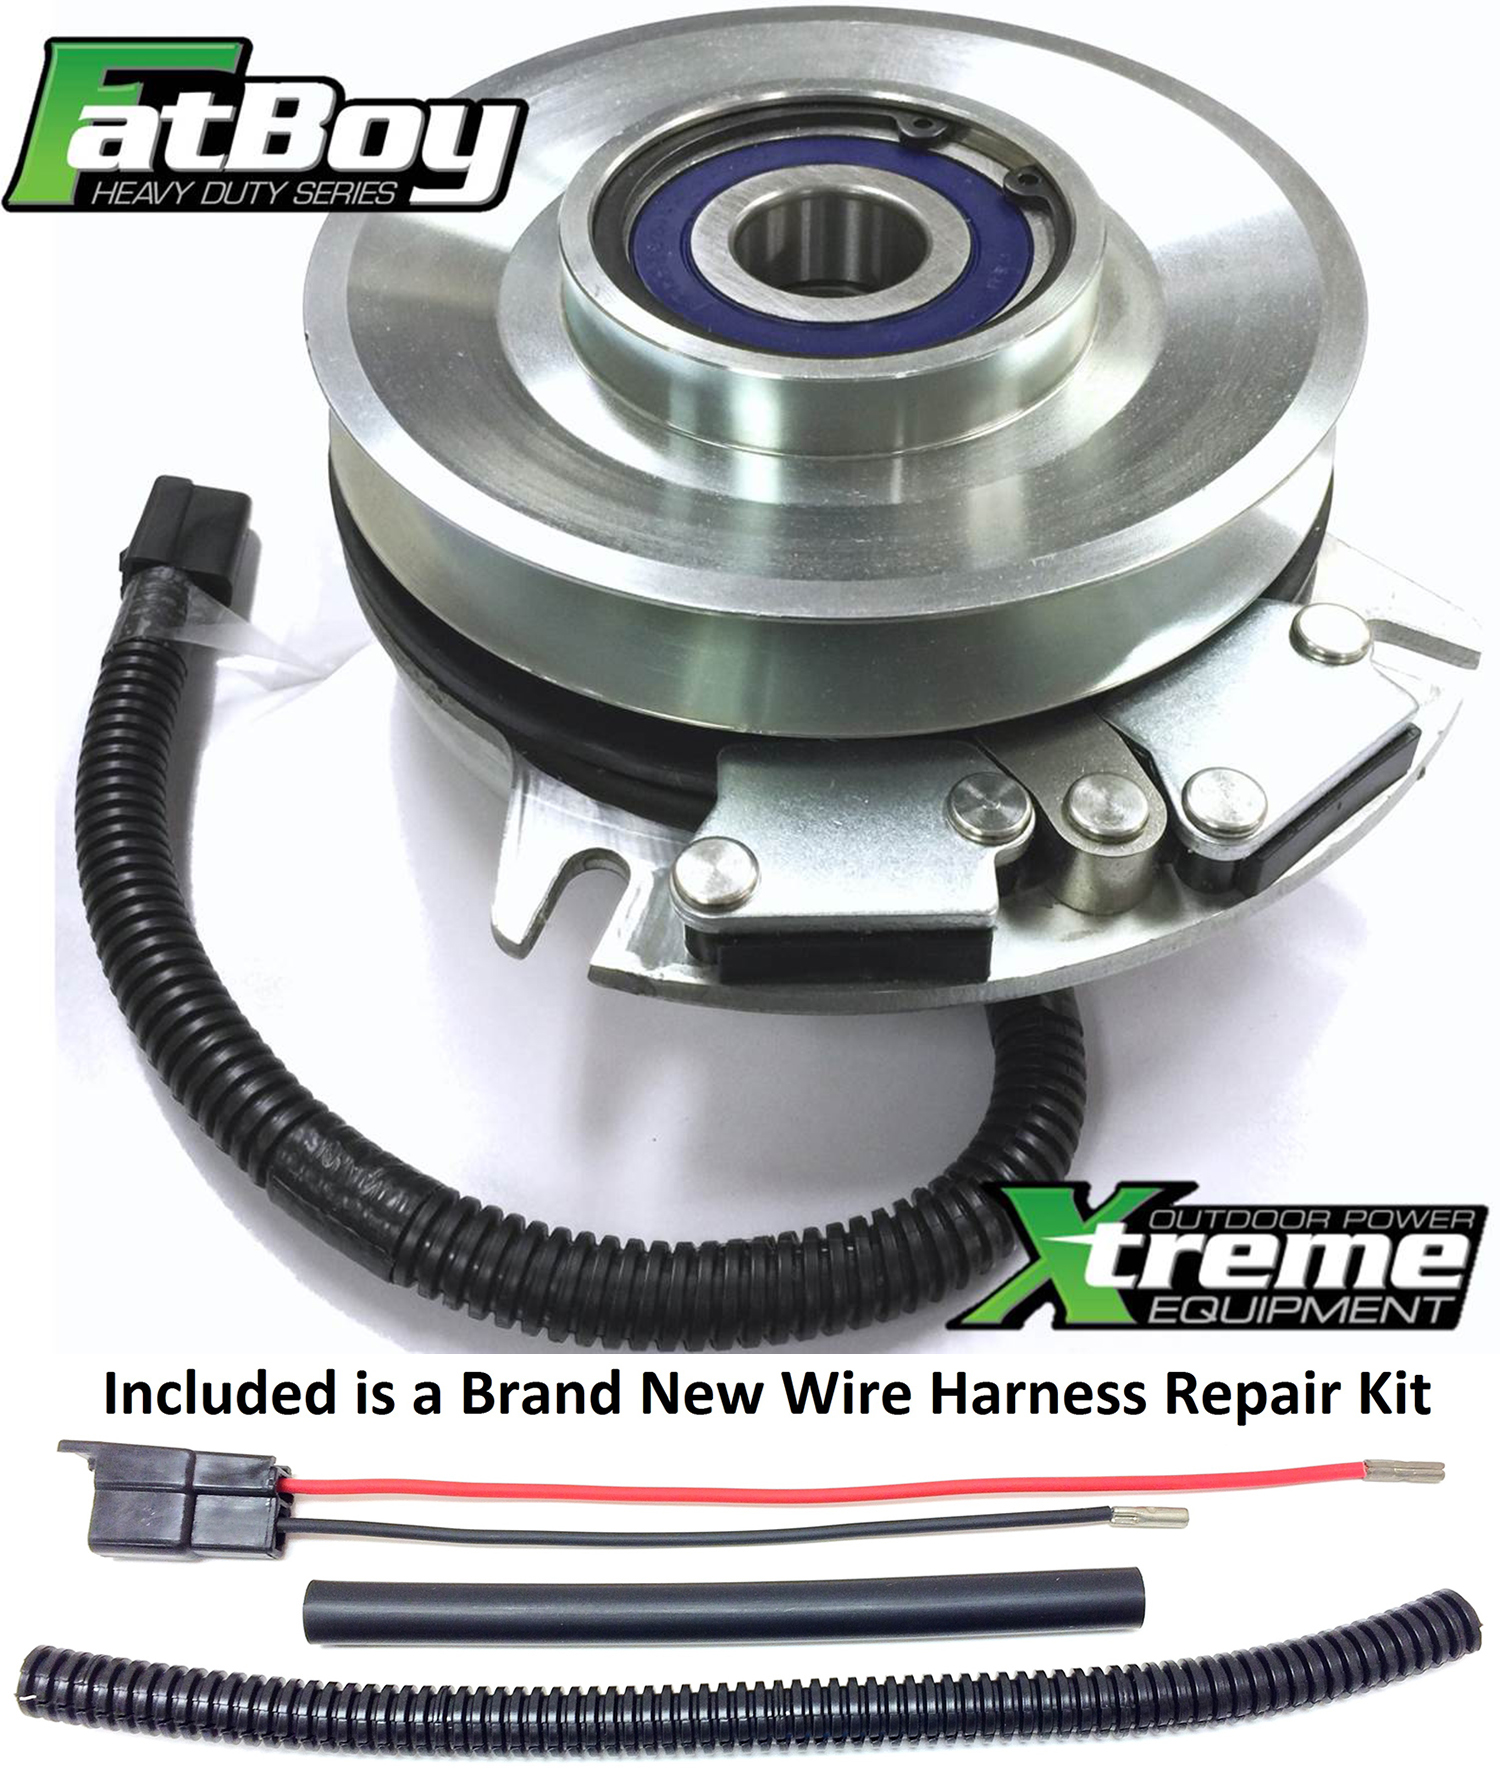 Bundle 2 Items Pto Electric Blade Clutch Wire Harness Repair Kit Engine Wiring Replaces Warner 5218 165 Fatboy W